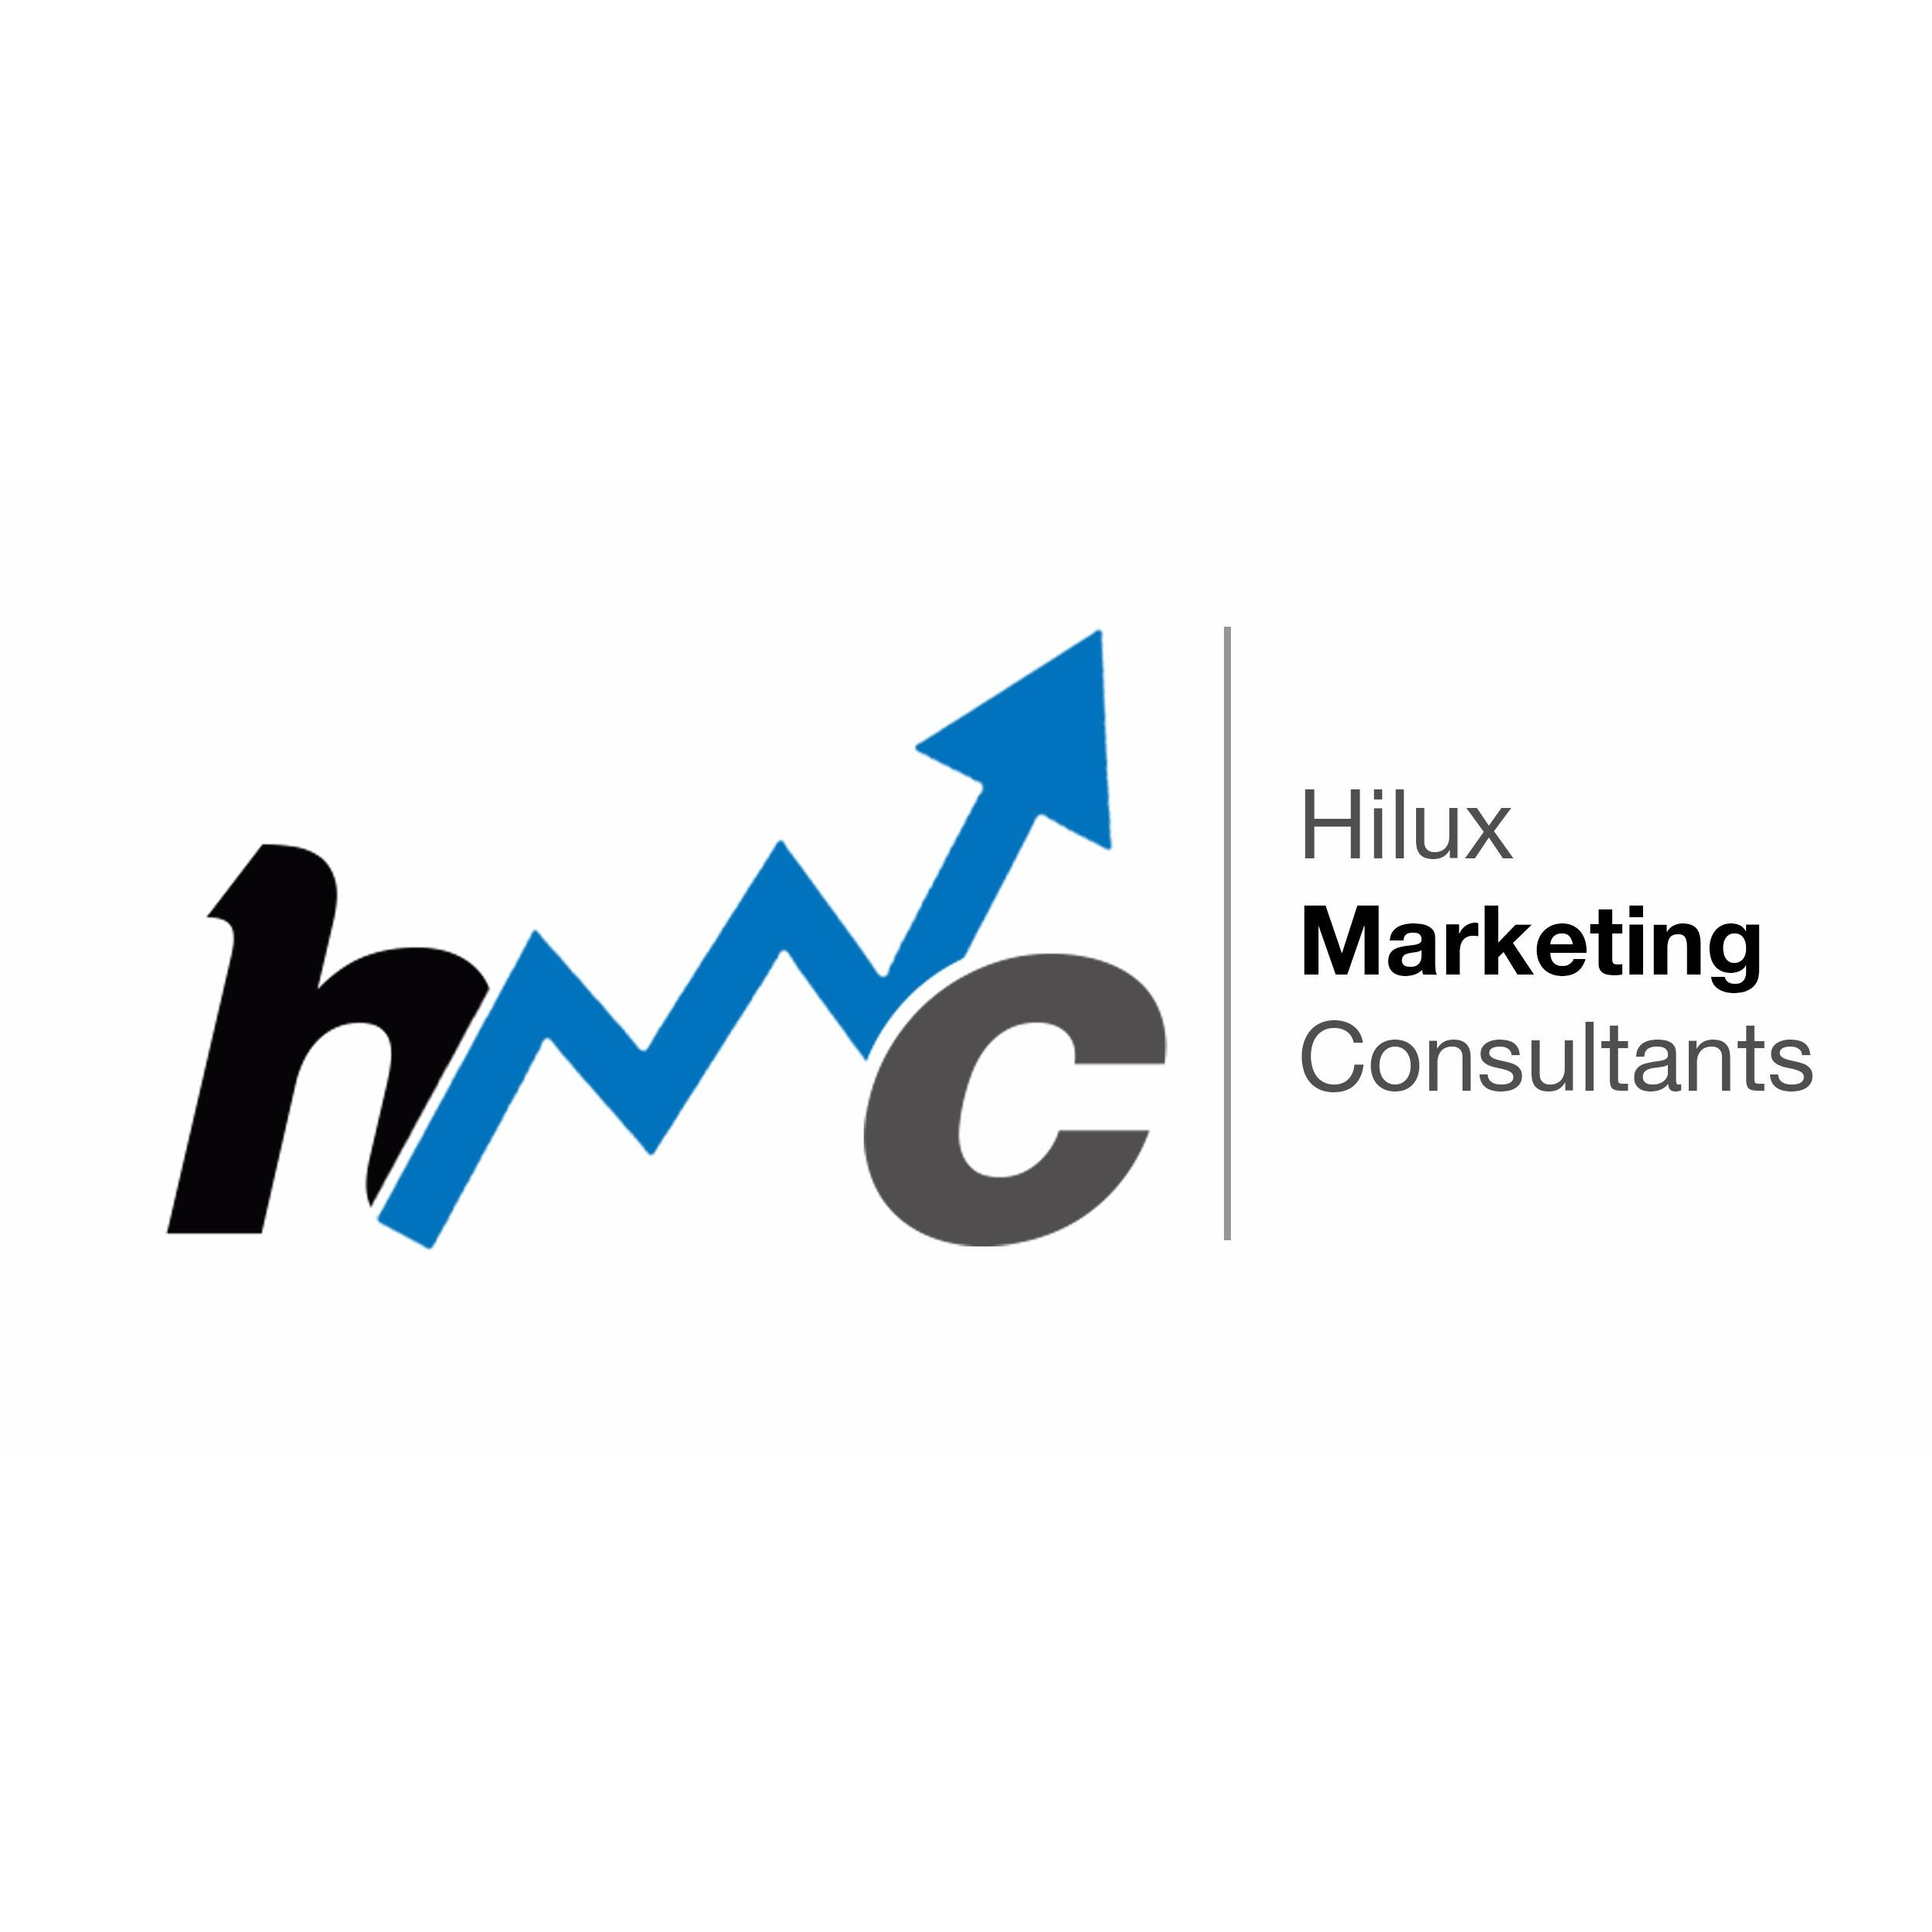 Hilux Marketing Consultants